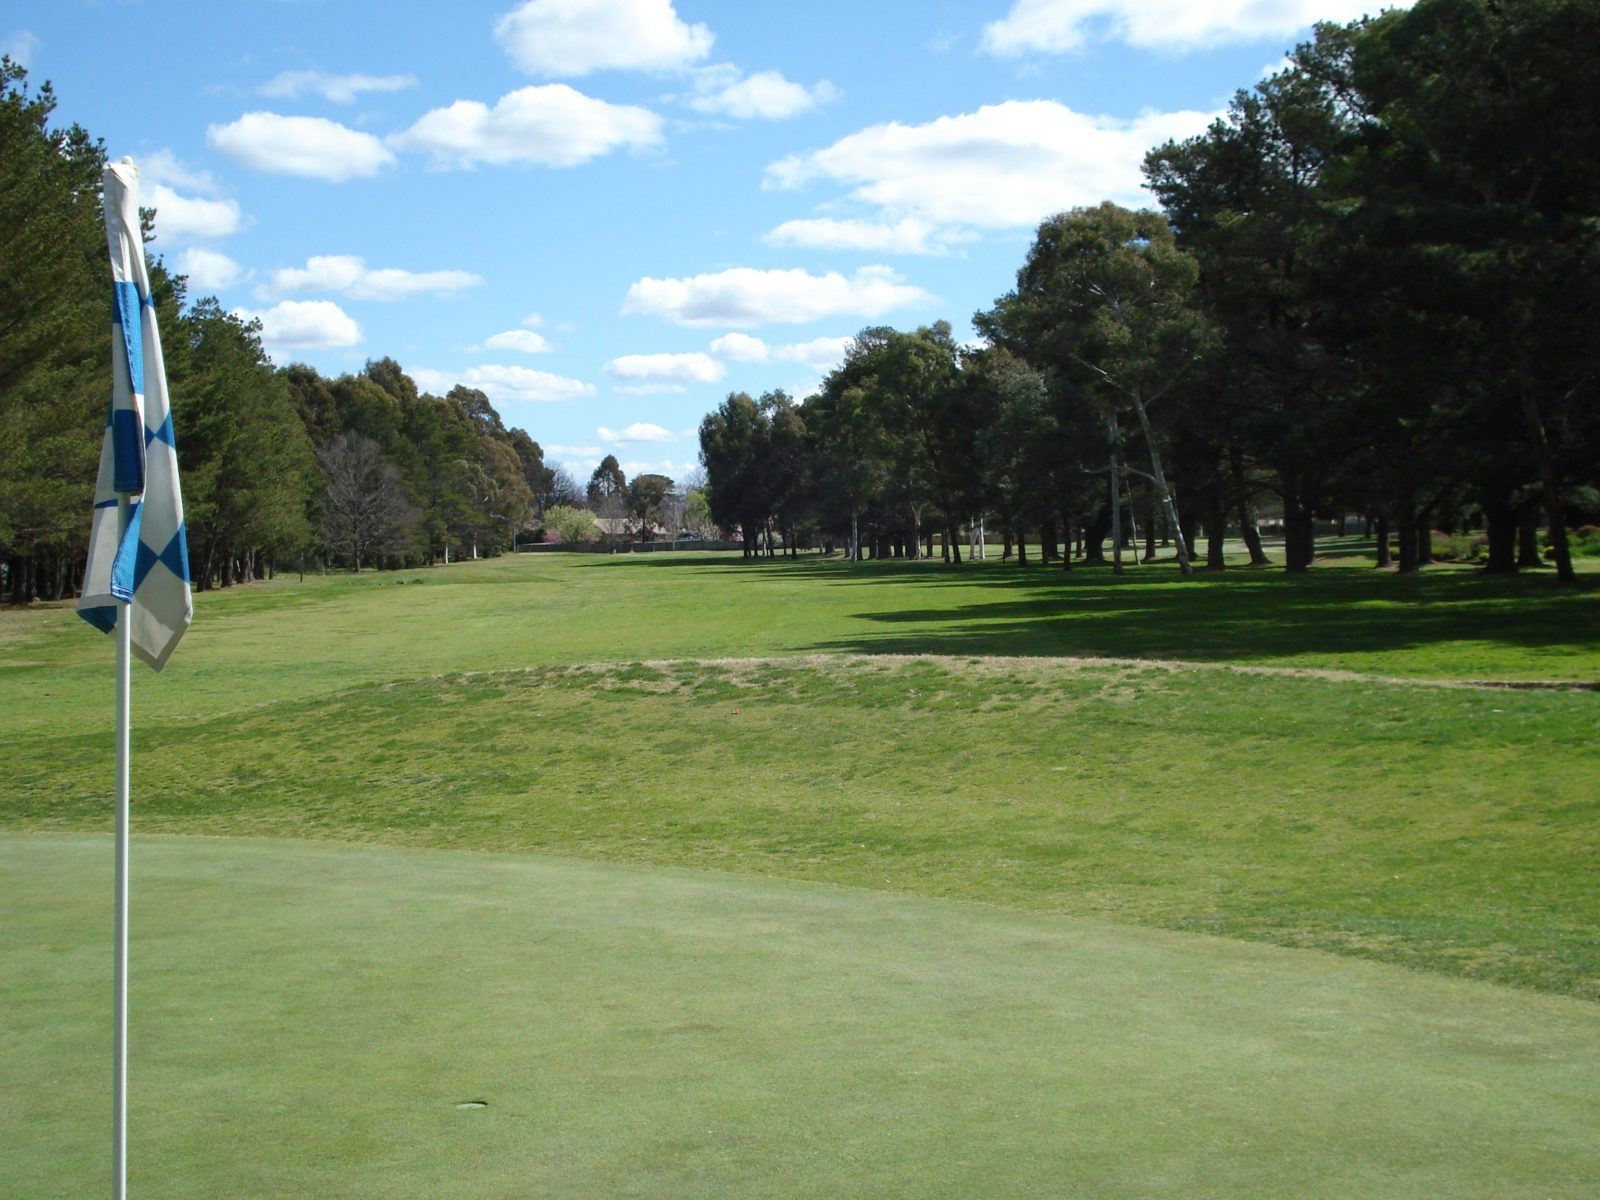 A fairway at RMC Golf Club